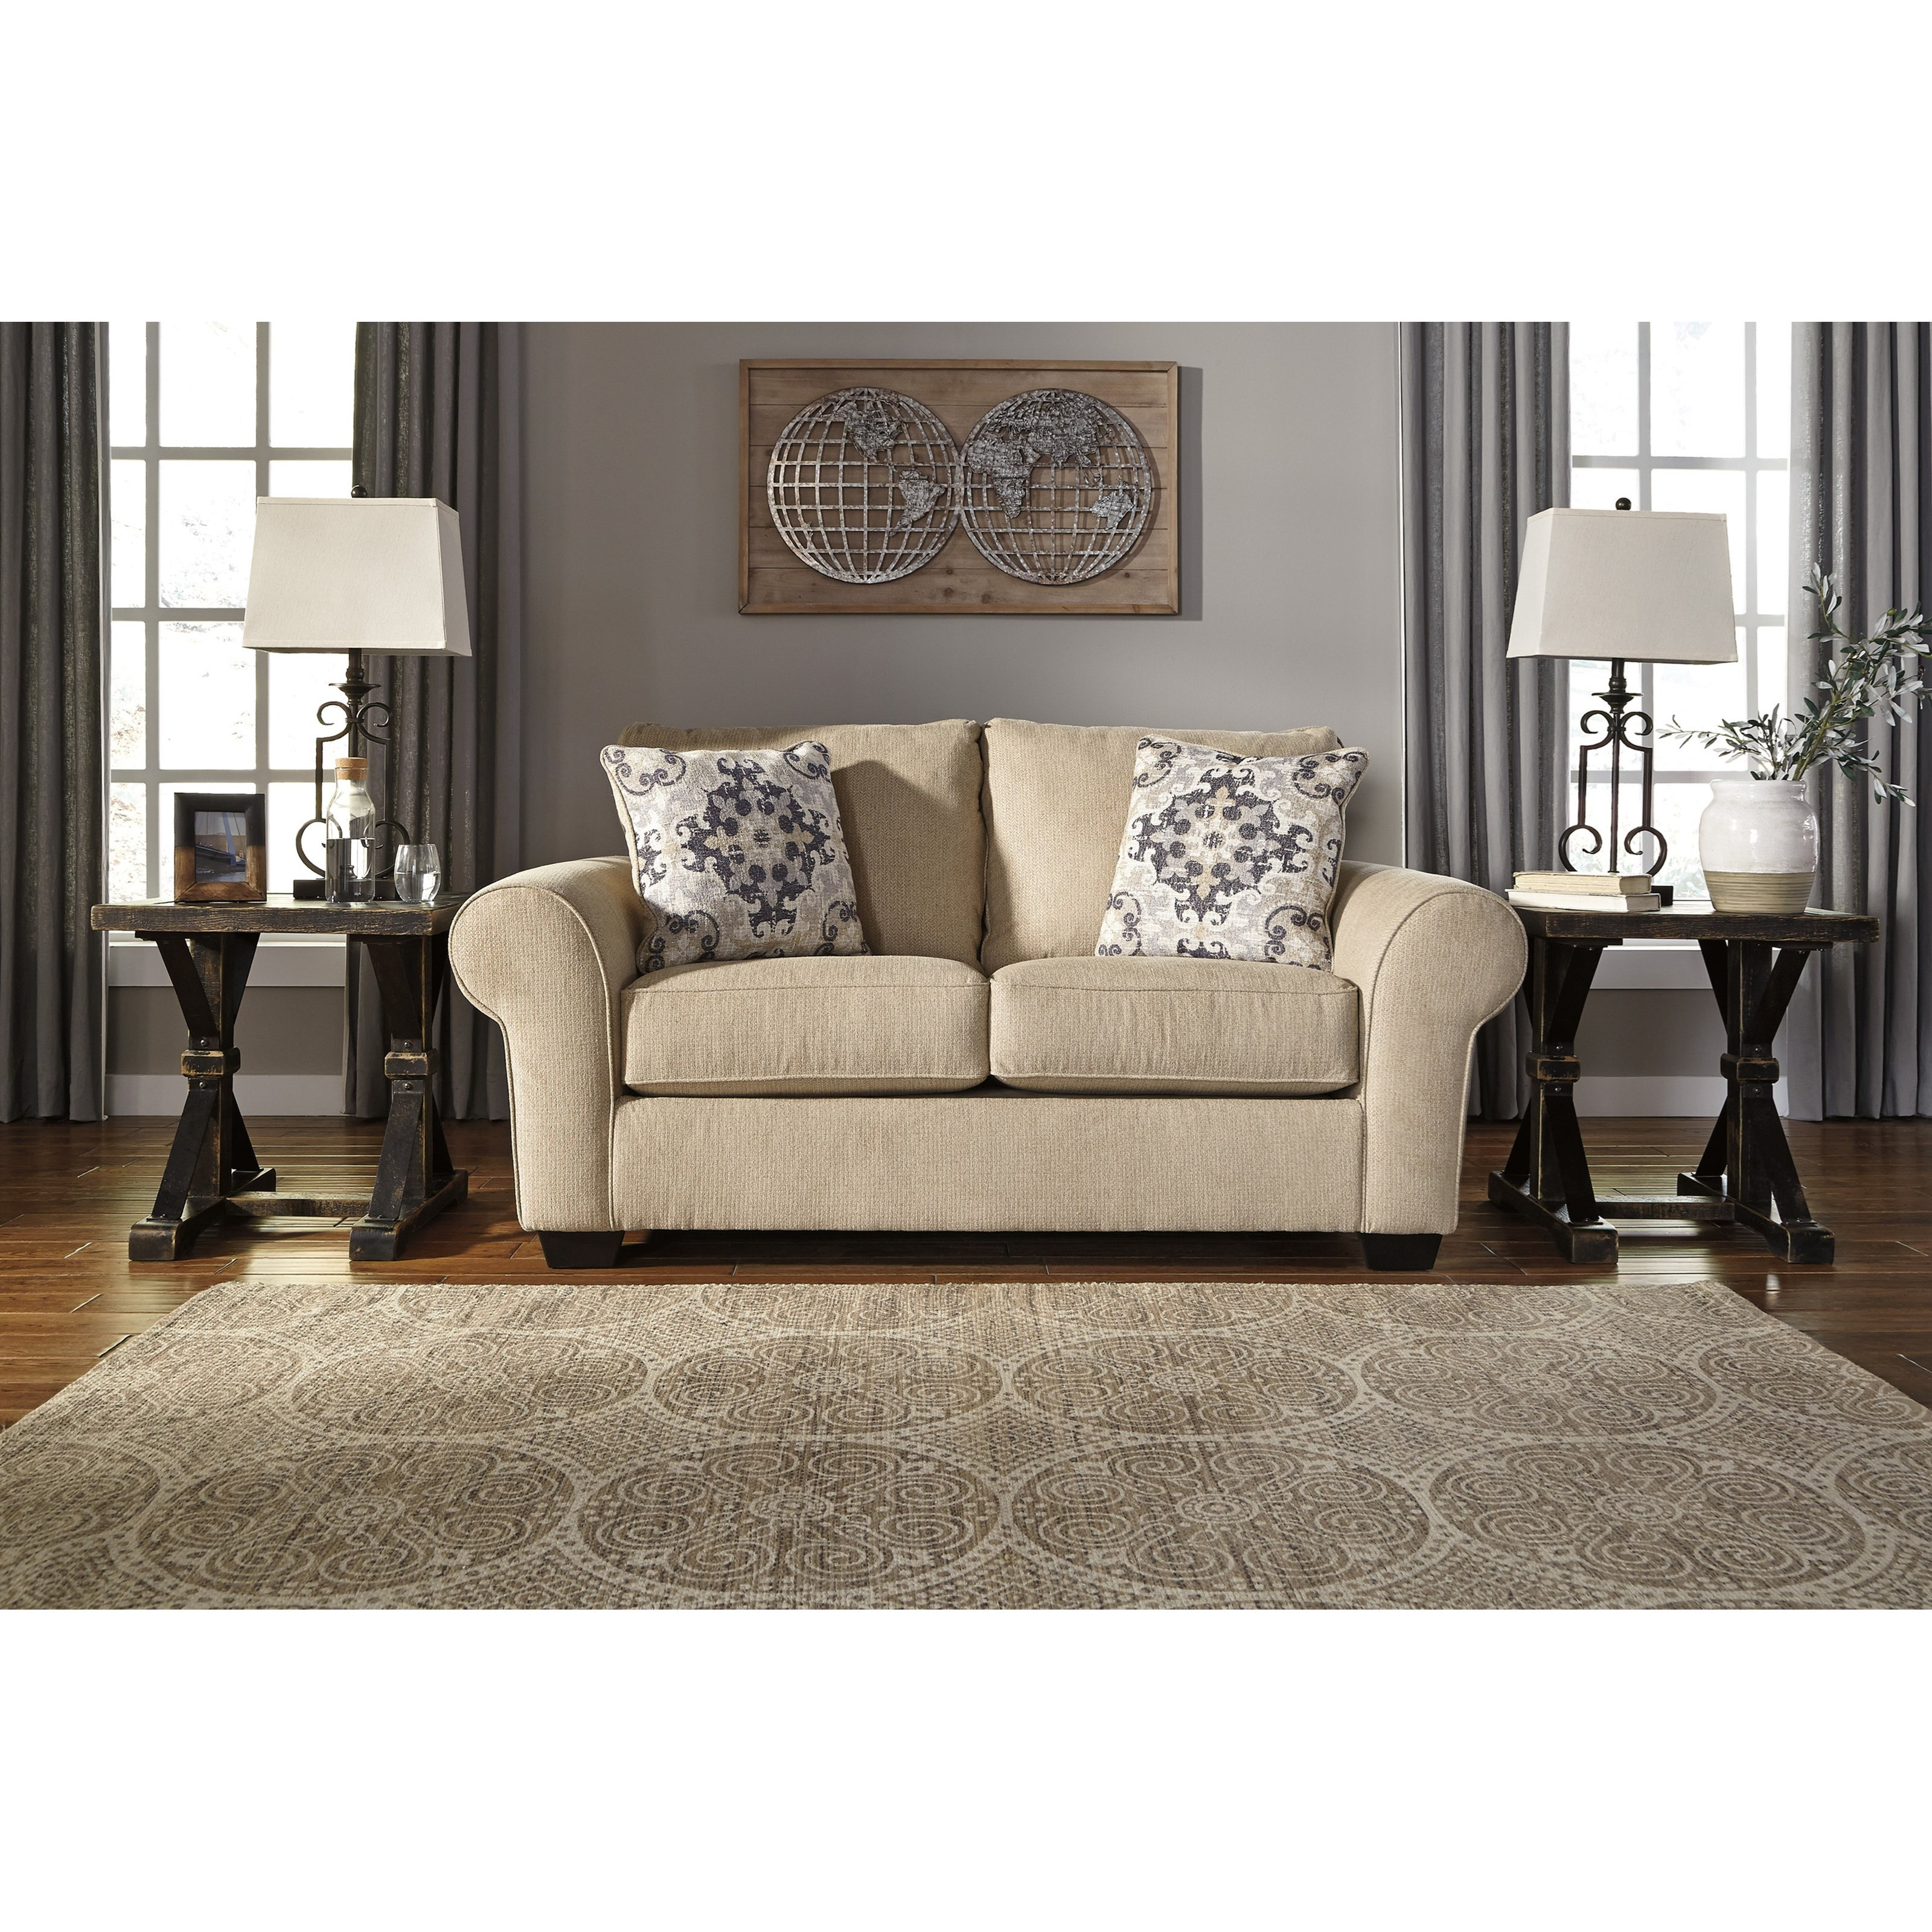 Signature Design By Ashley Denitasse Casual Loveseat With Rolled Arms Prime Brothers Furniture